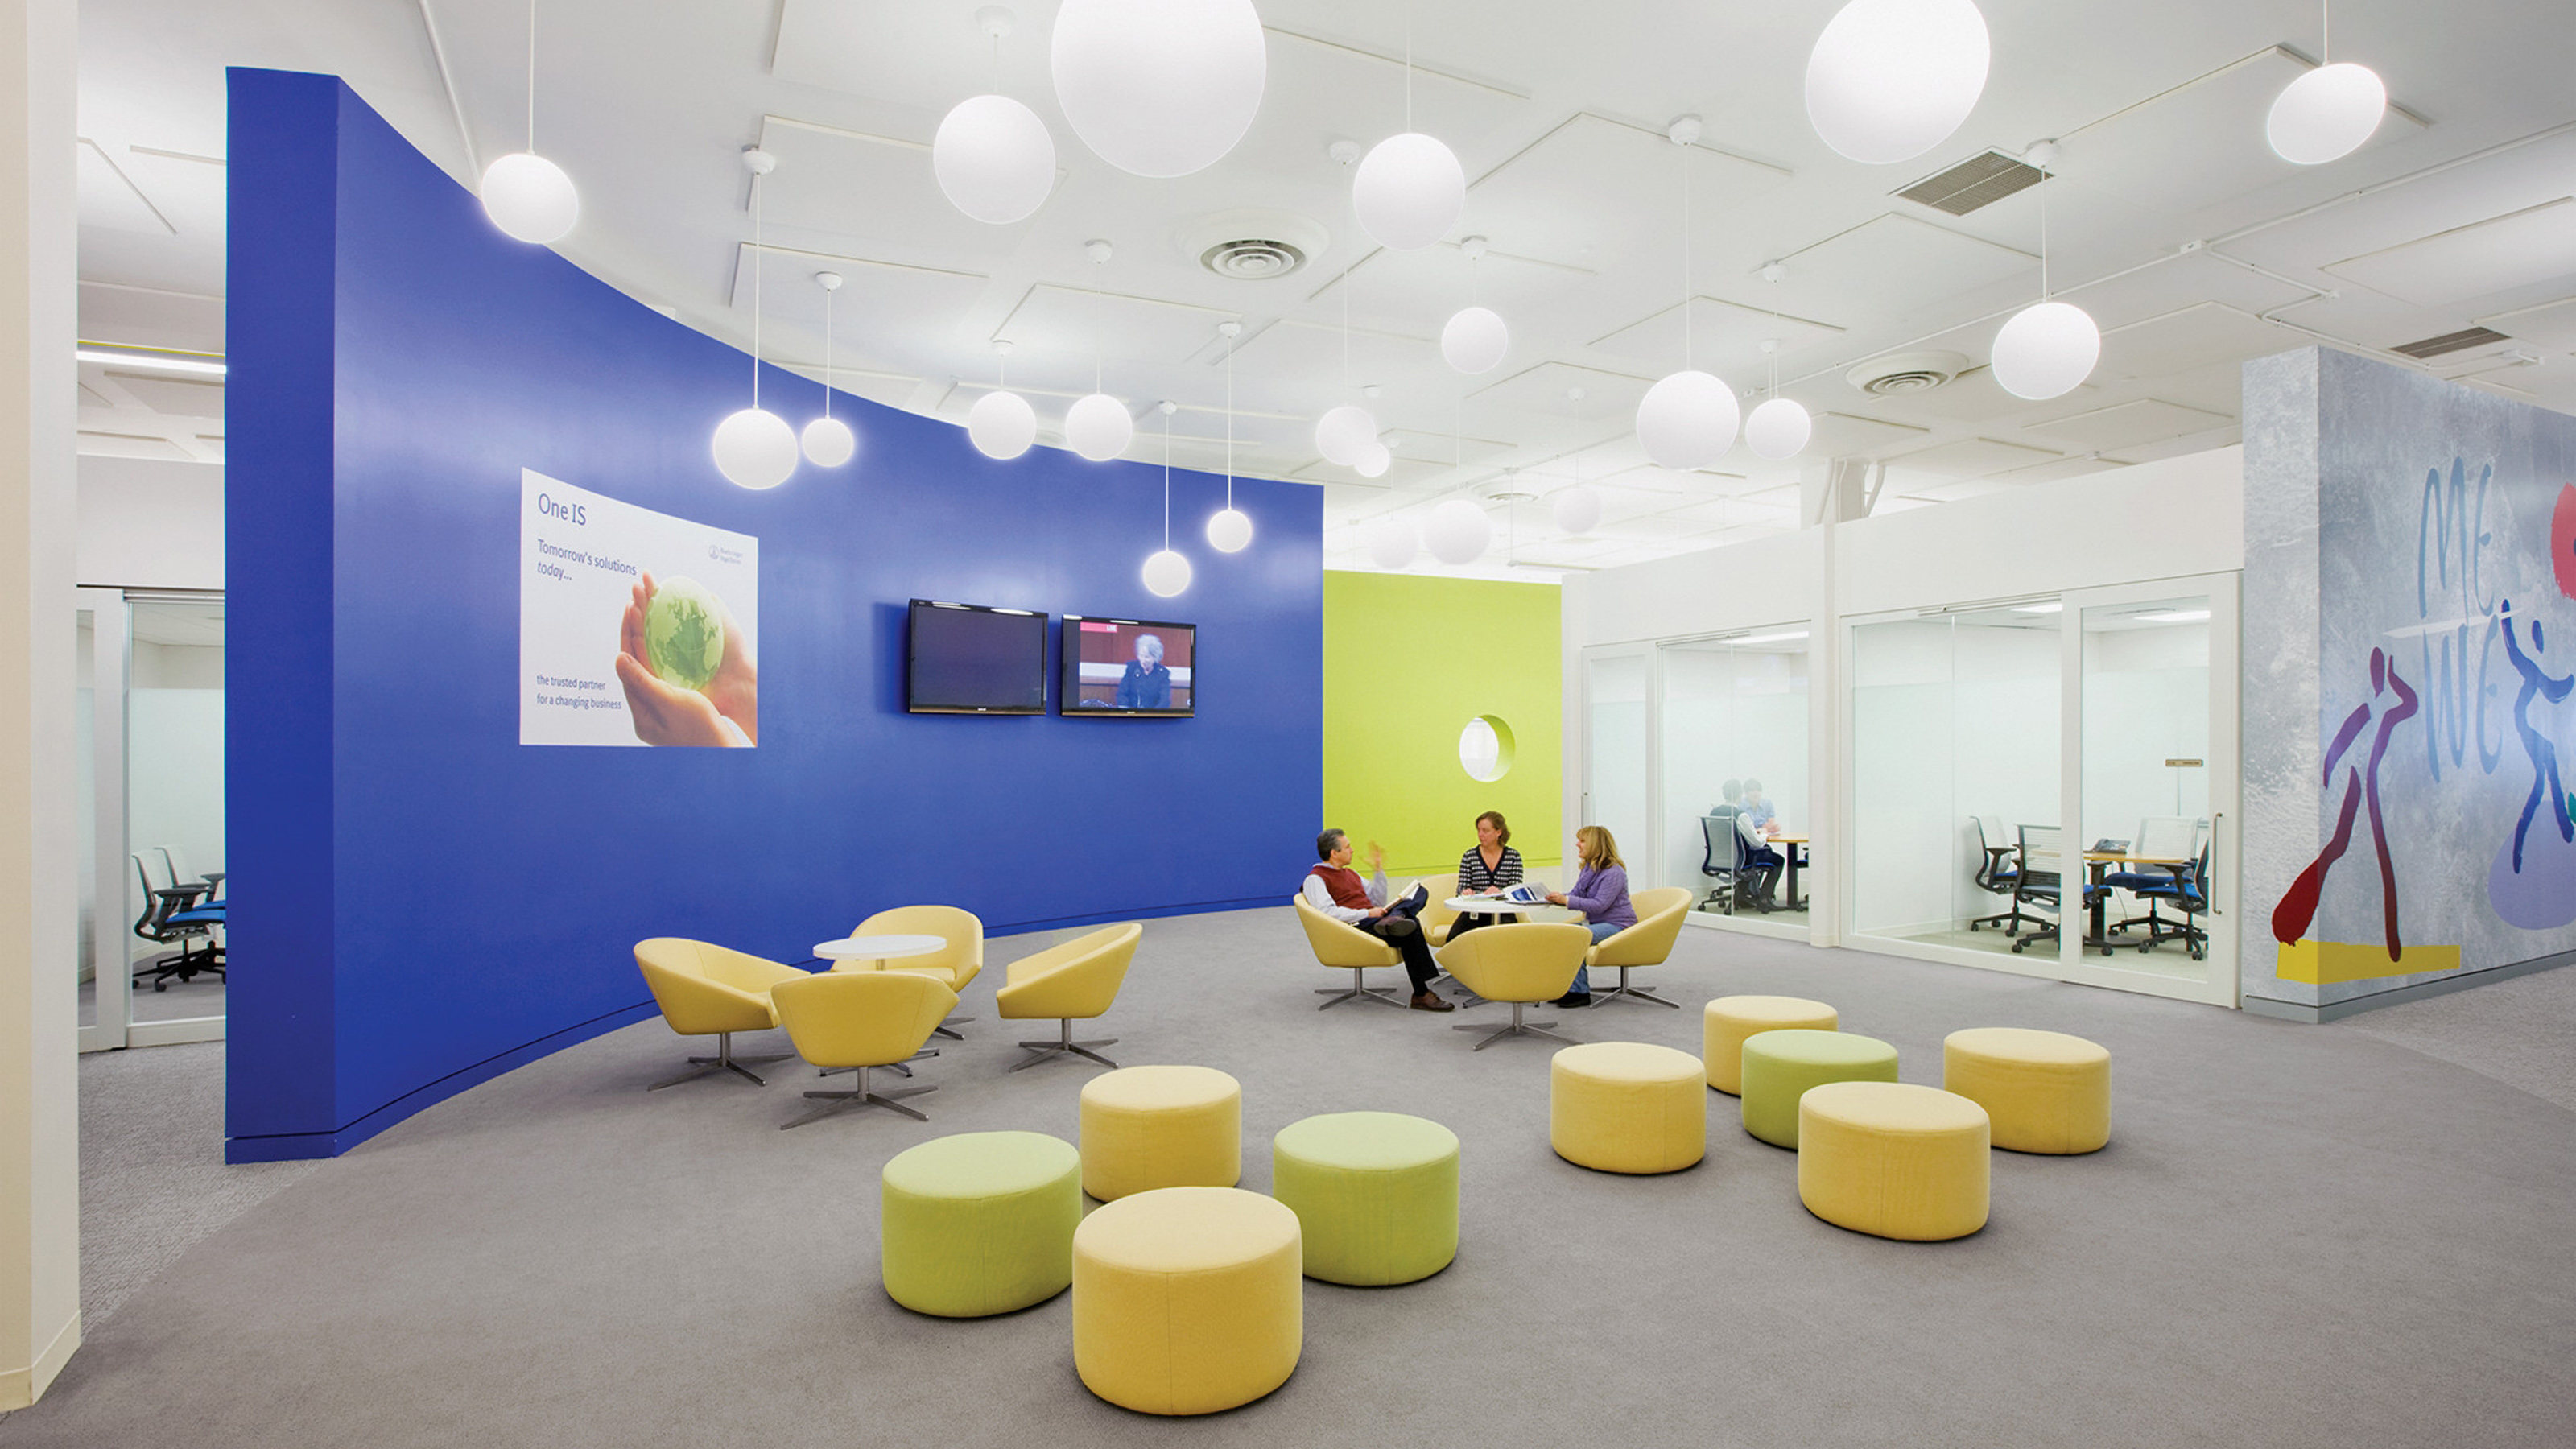 Boosting workplace wellbeing steelcase for Office design wellbeing